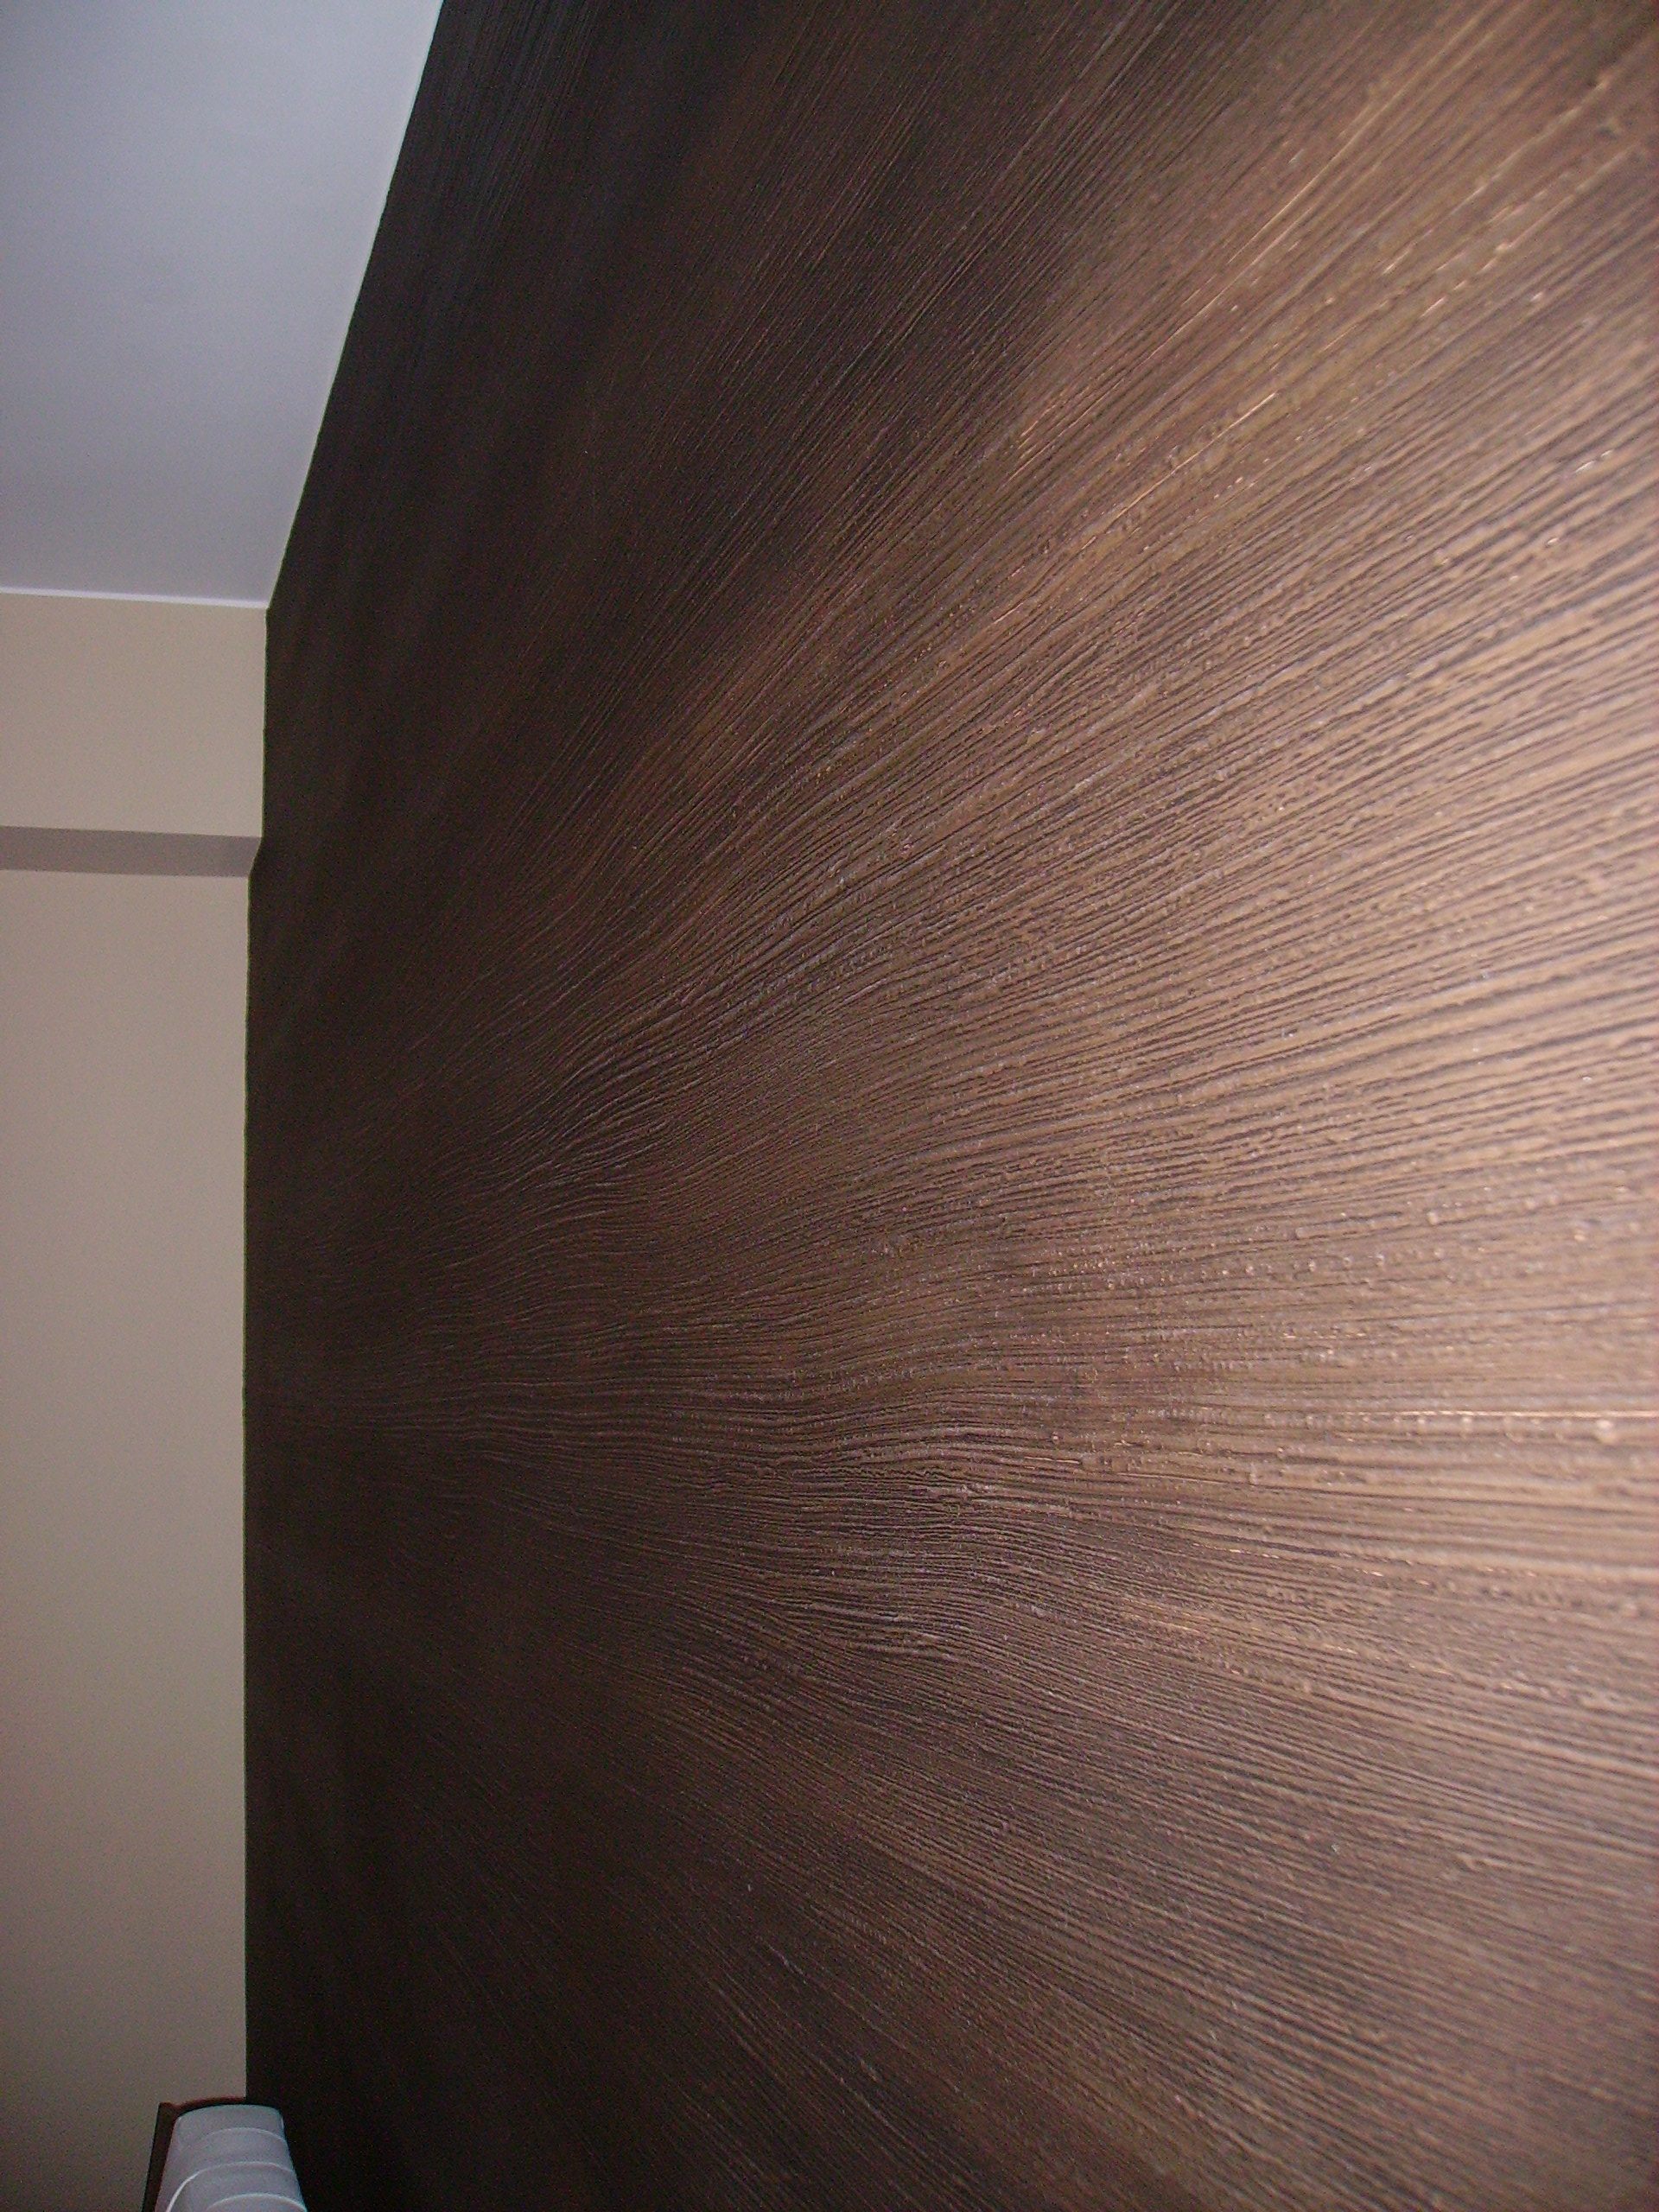 Souvent Wenge' - effetto decorativo a rilievo per le pareti - Ideacolor VZ23